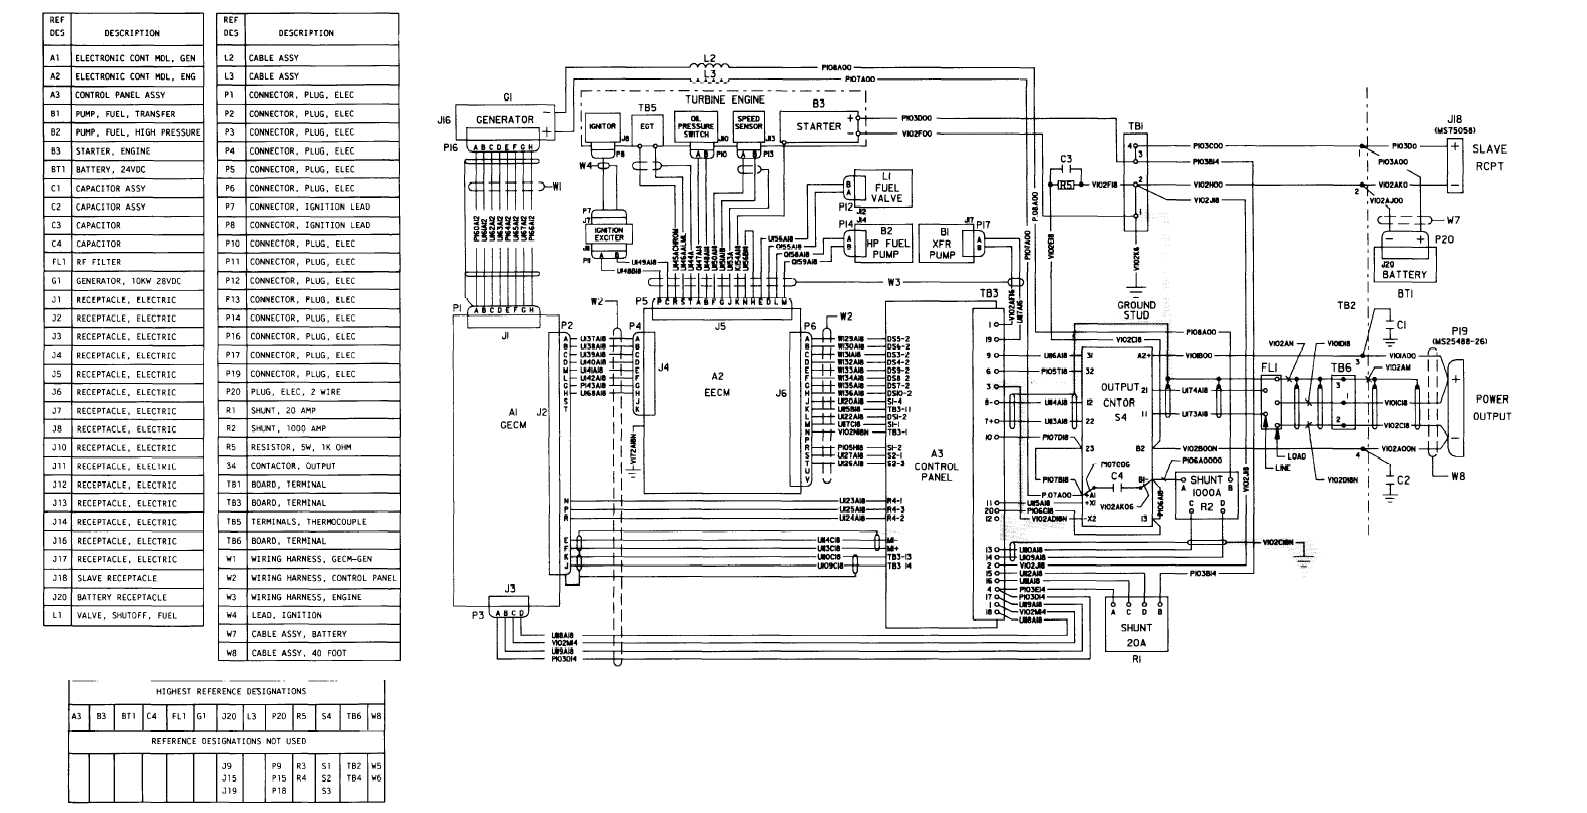 TM 5 6115 612 12_300_1 fo 3 generator set wiring diagram wiring diagram ford at crackthecode.co